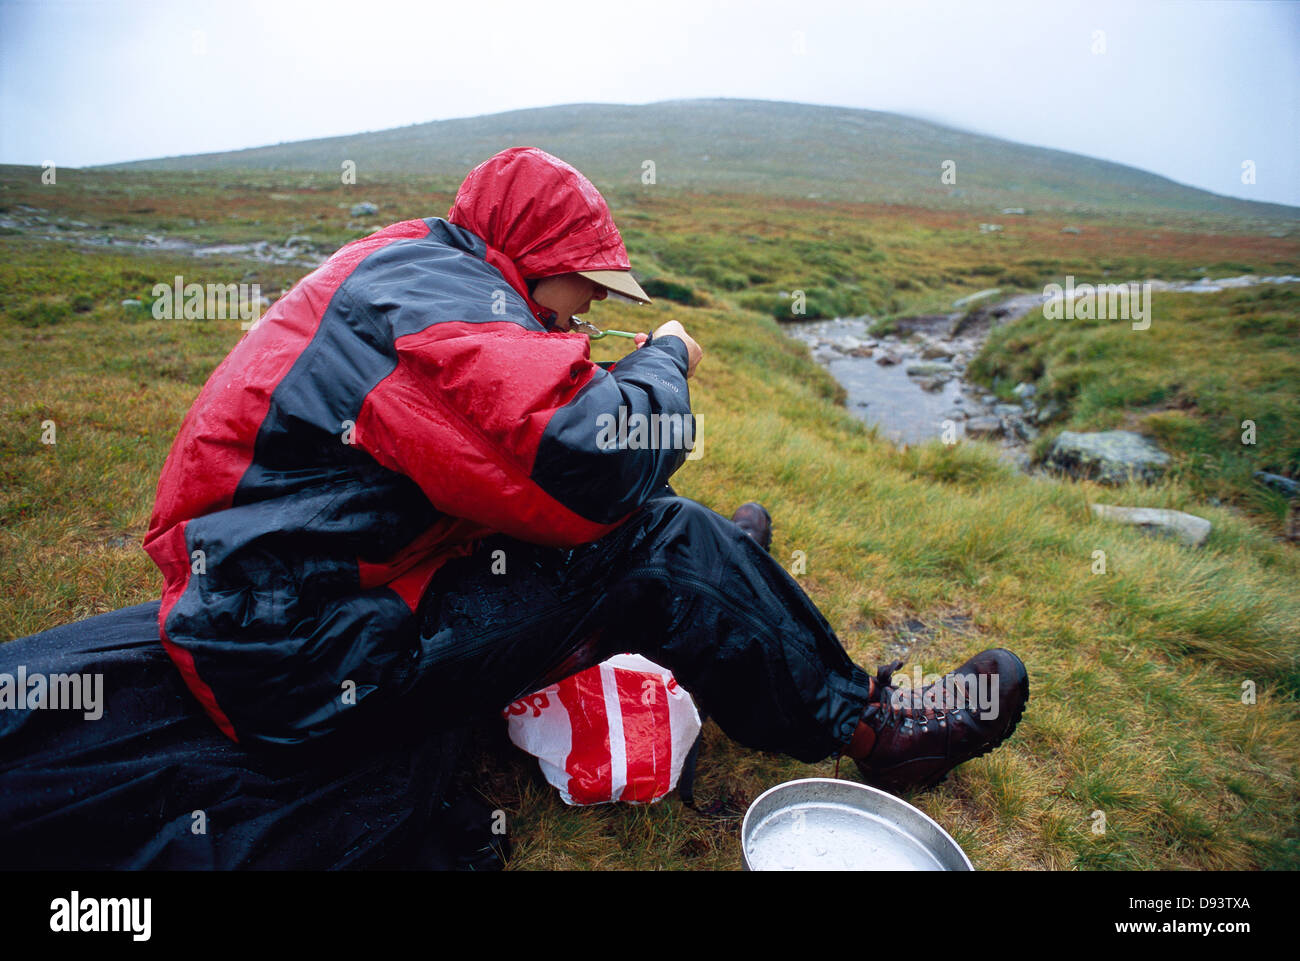 Food break during a hiking excursion. - Stock Image